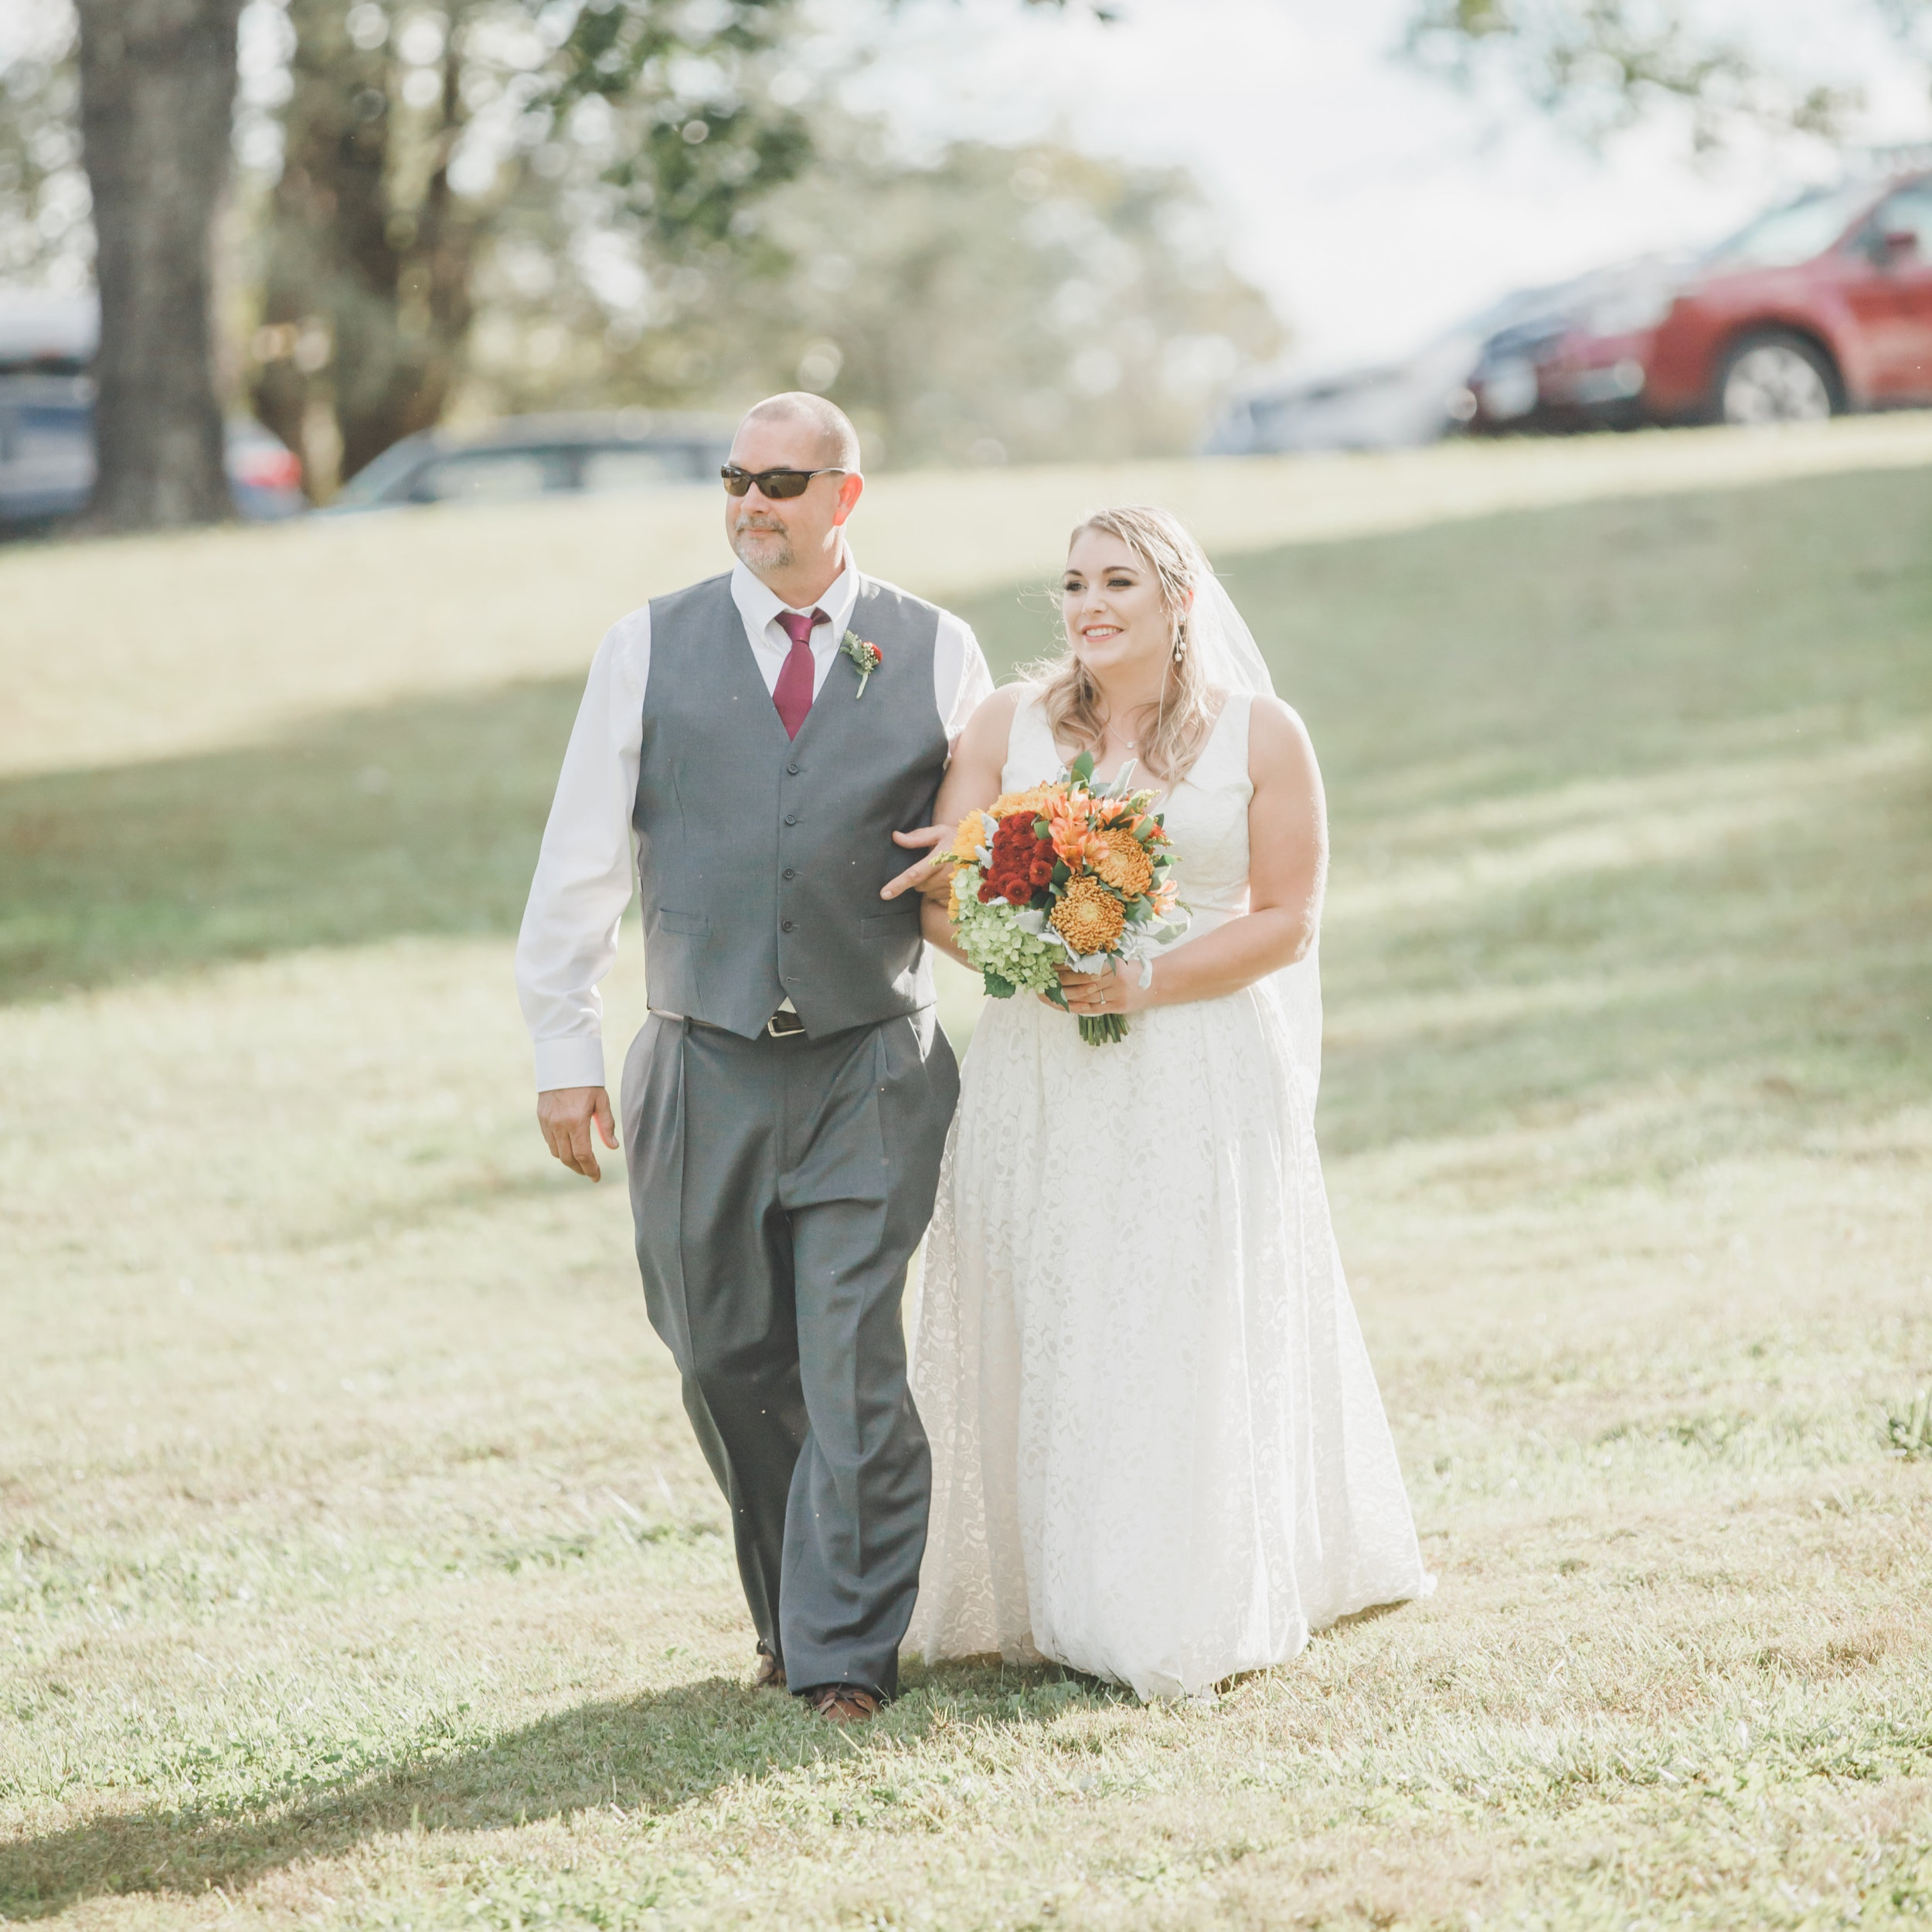 Fling - Virginia Wedding Photographer - Photography by Amy Nicole-245-28.jpg